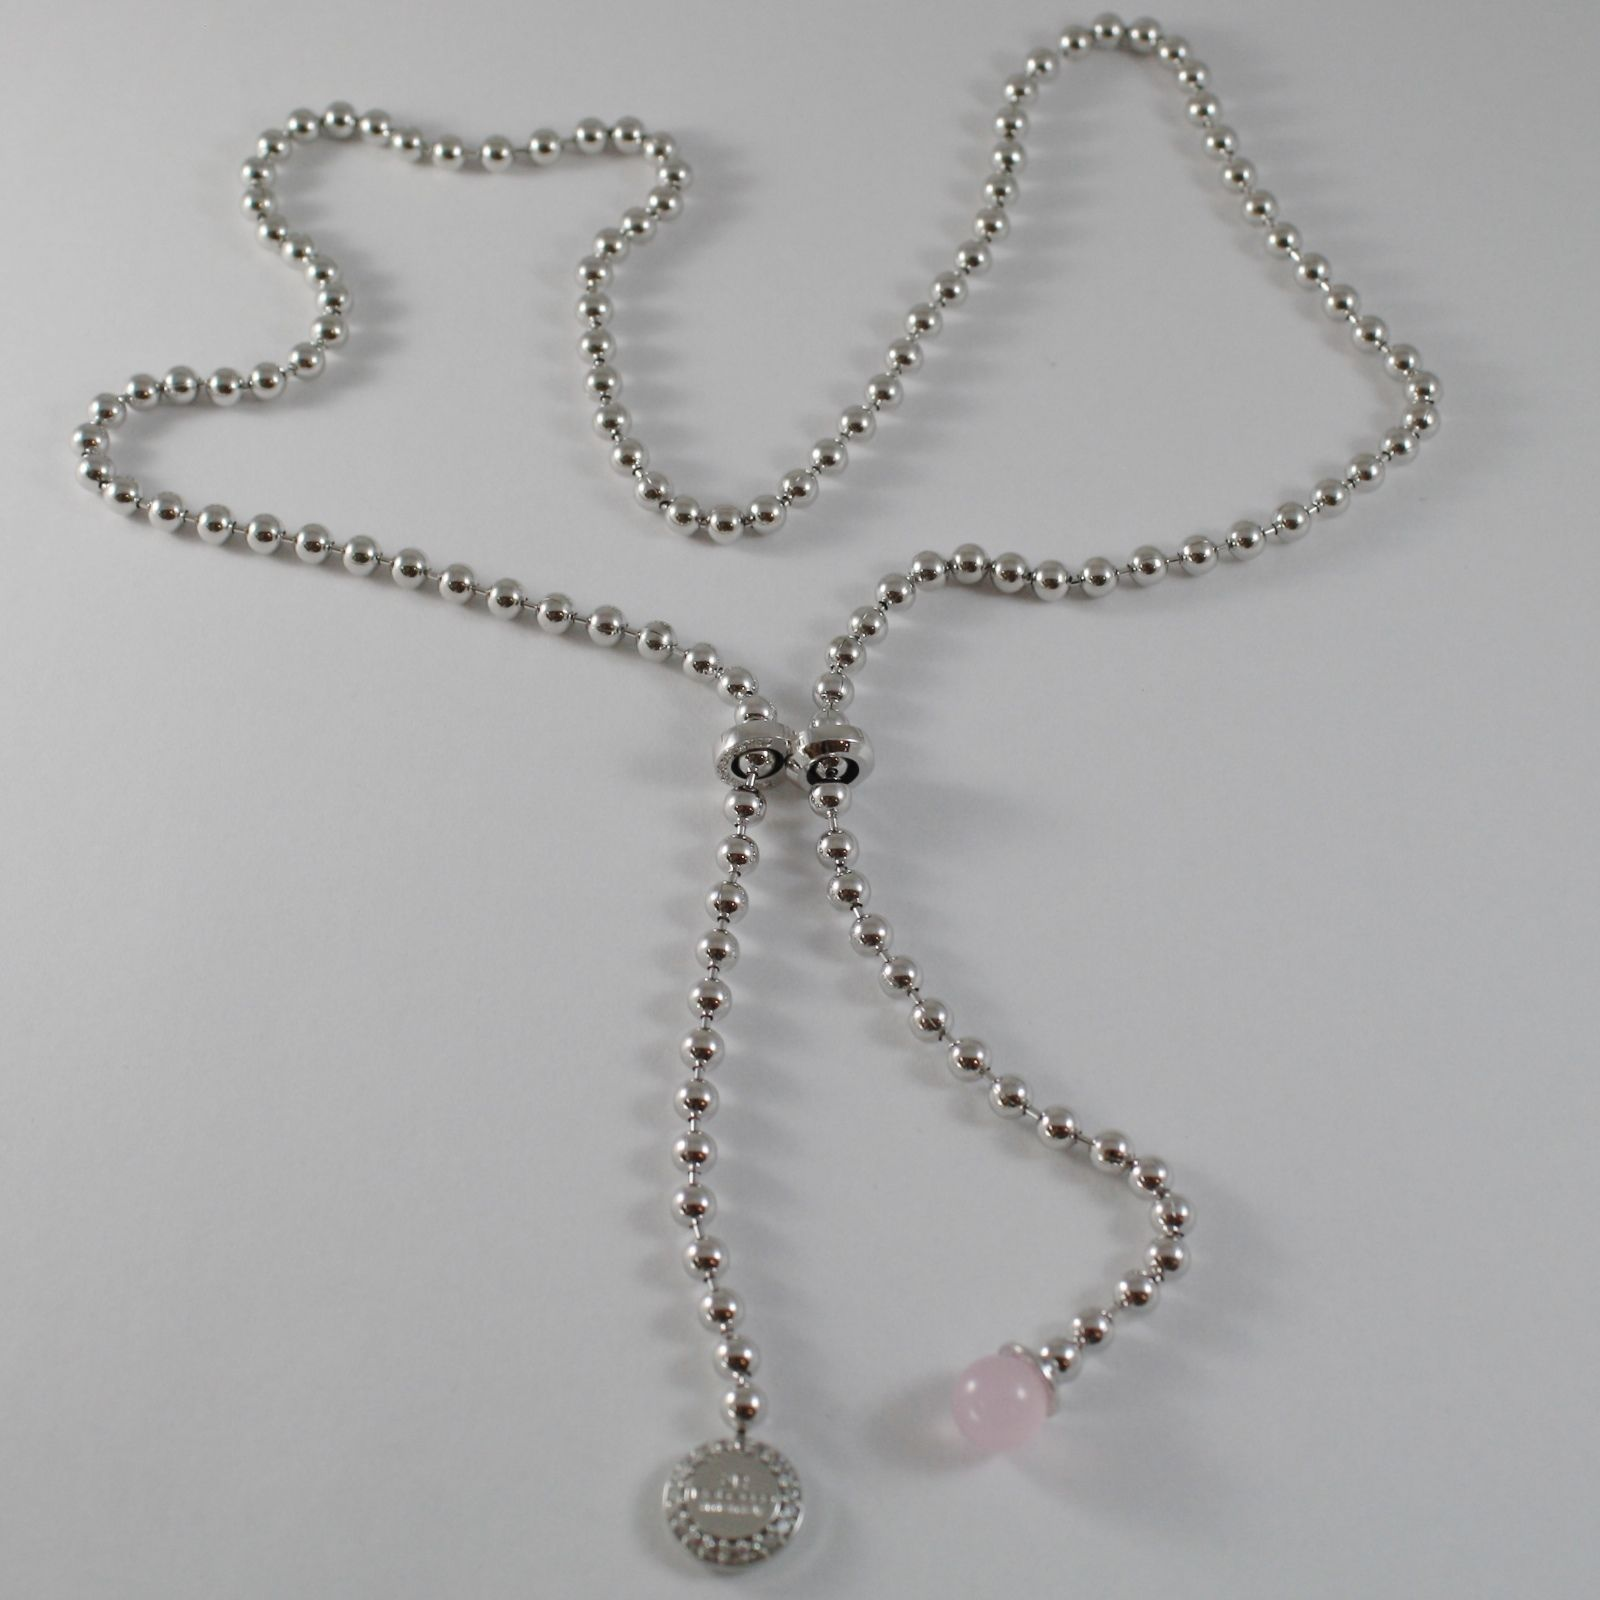 WHITE GOLD LARIAT BRONZE REBECCA BALLS NECKLACE PINK STONE BHBKBQ05 MADE ITALY